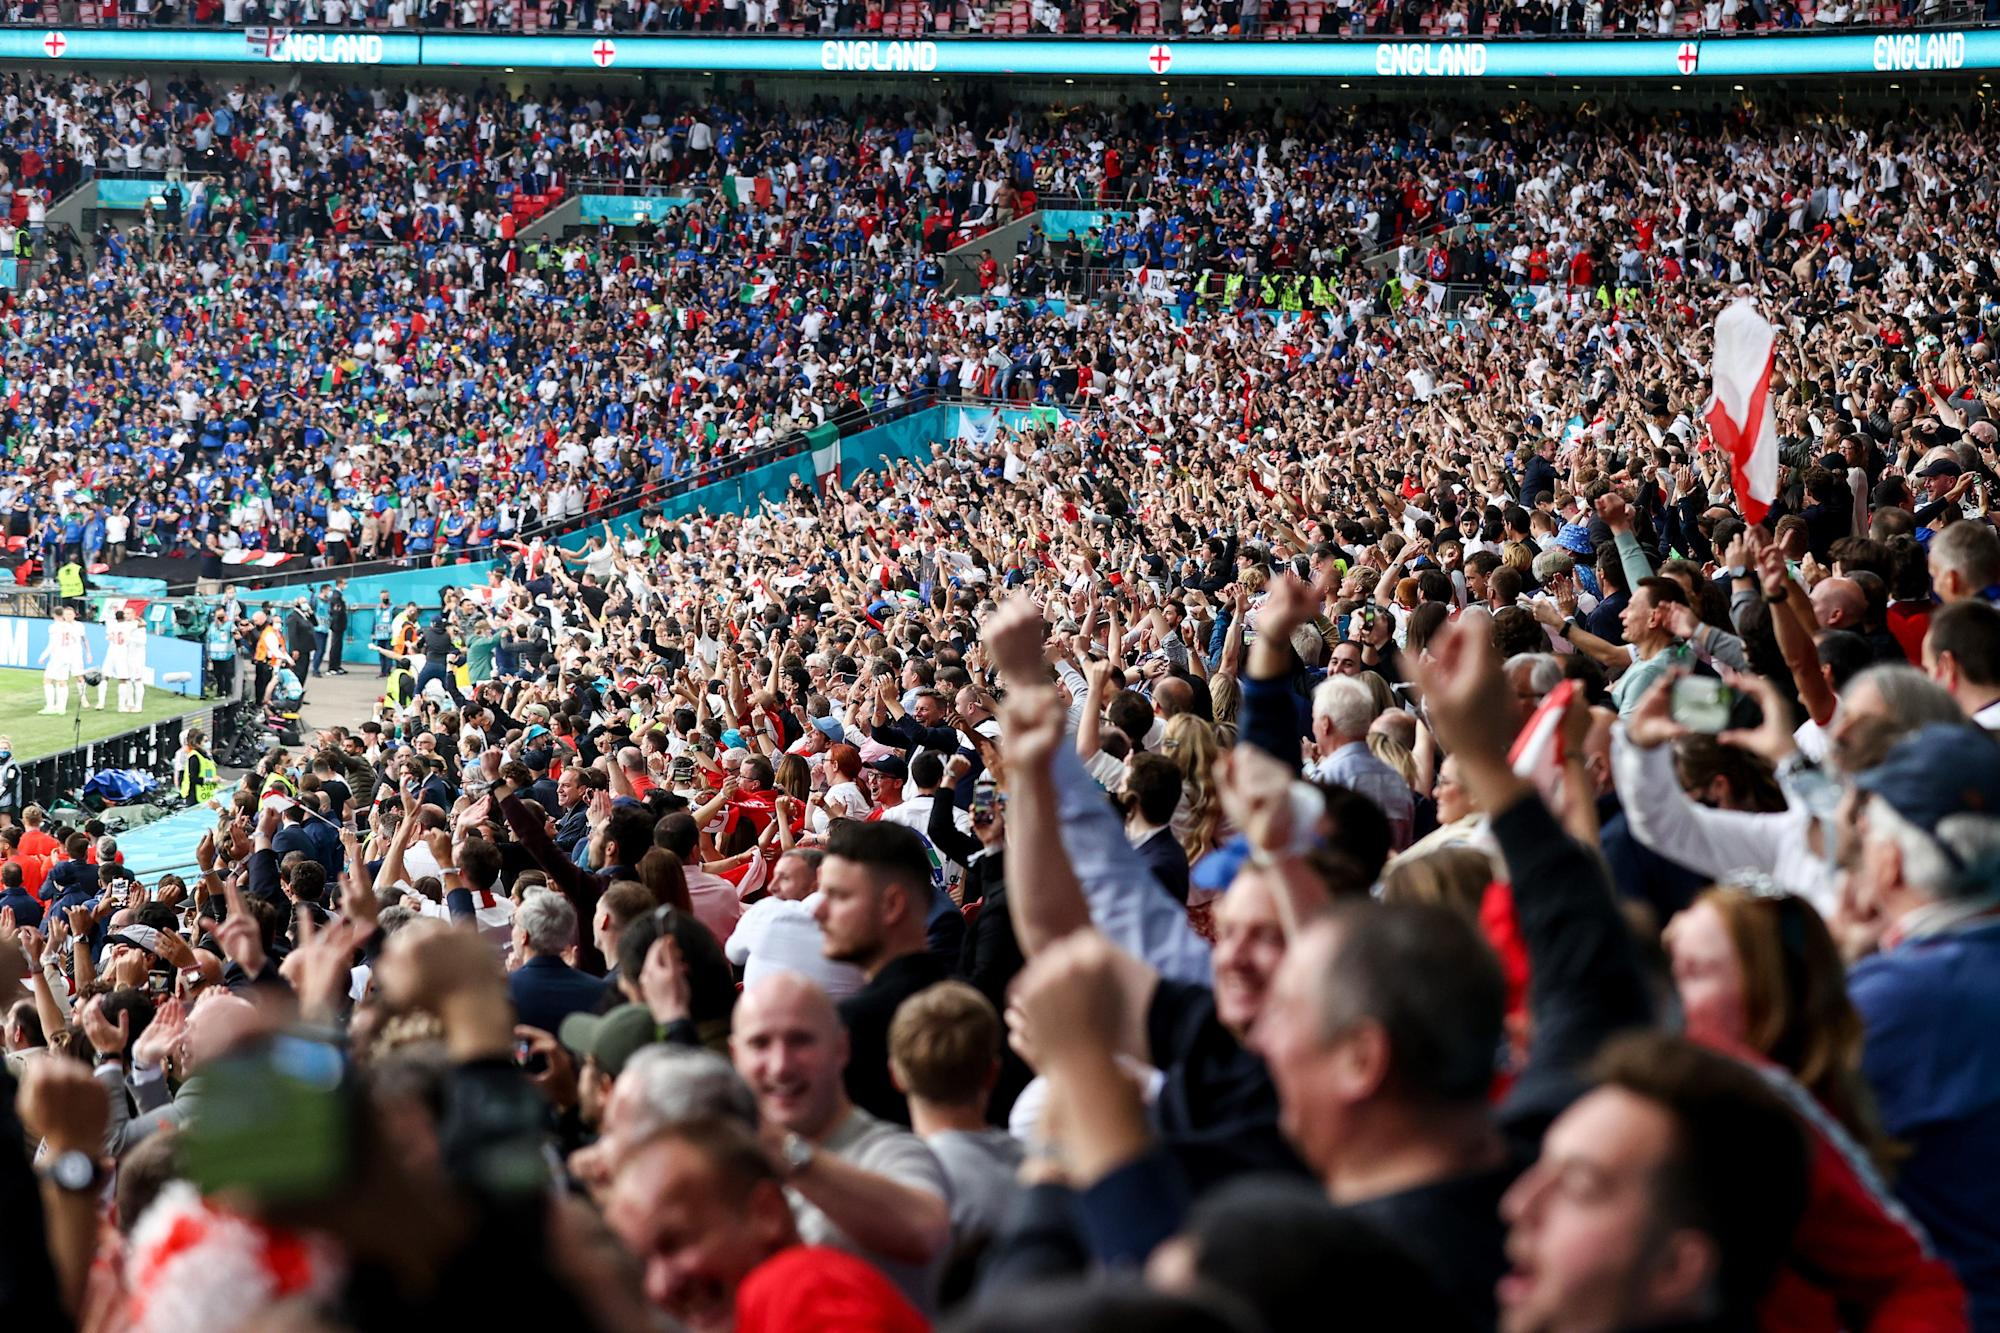 FA pledges full review into Wembley security breach